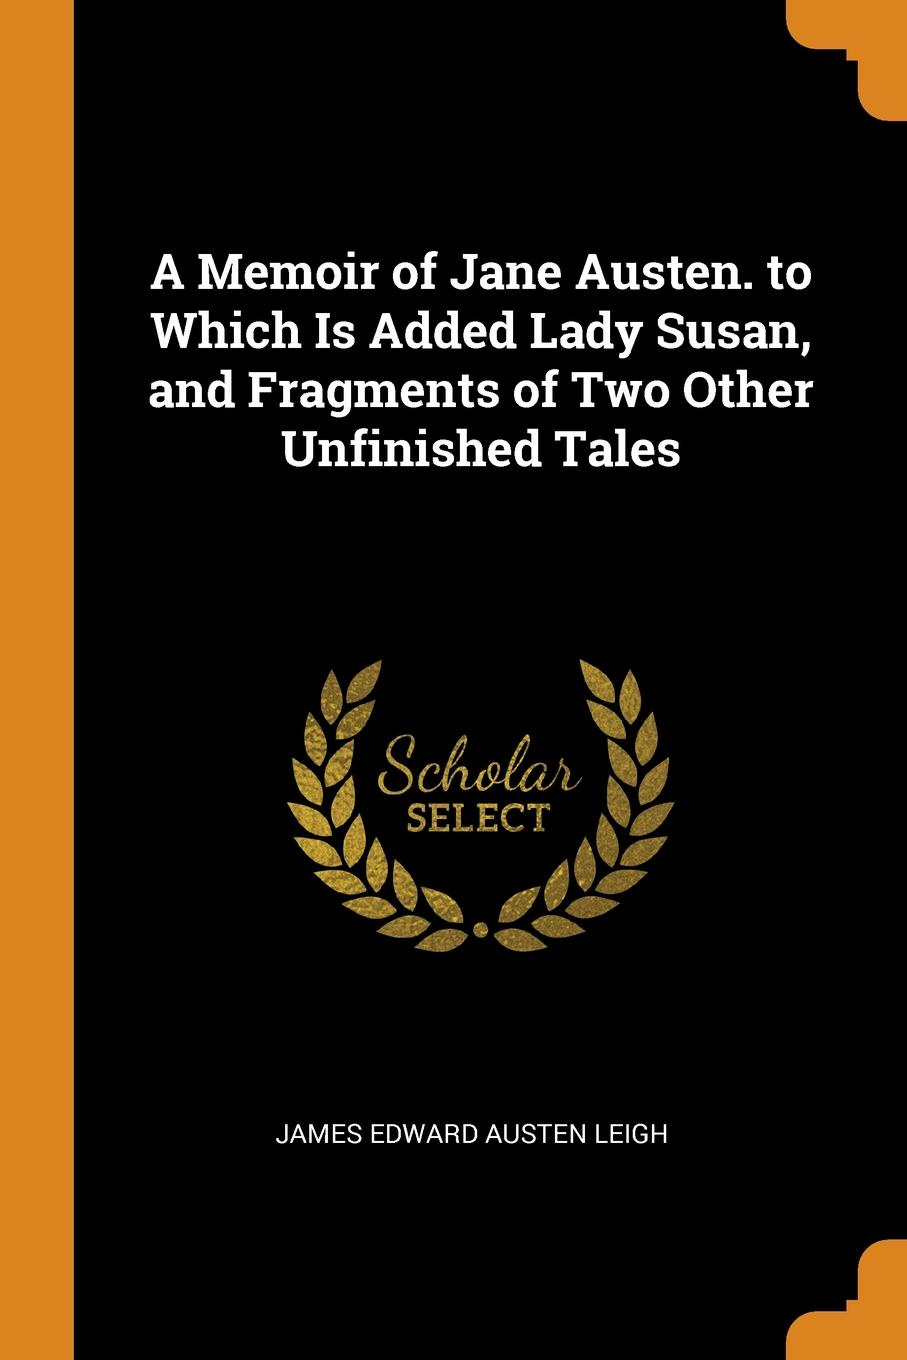 James Edward Austen Leigh A Memoir of Jane Austen. to Which Is Added Lady Susan, and Fragments of Two Other Unfinished Tales